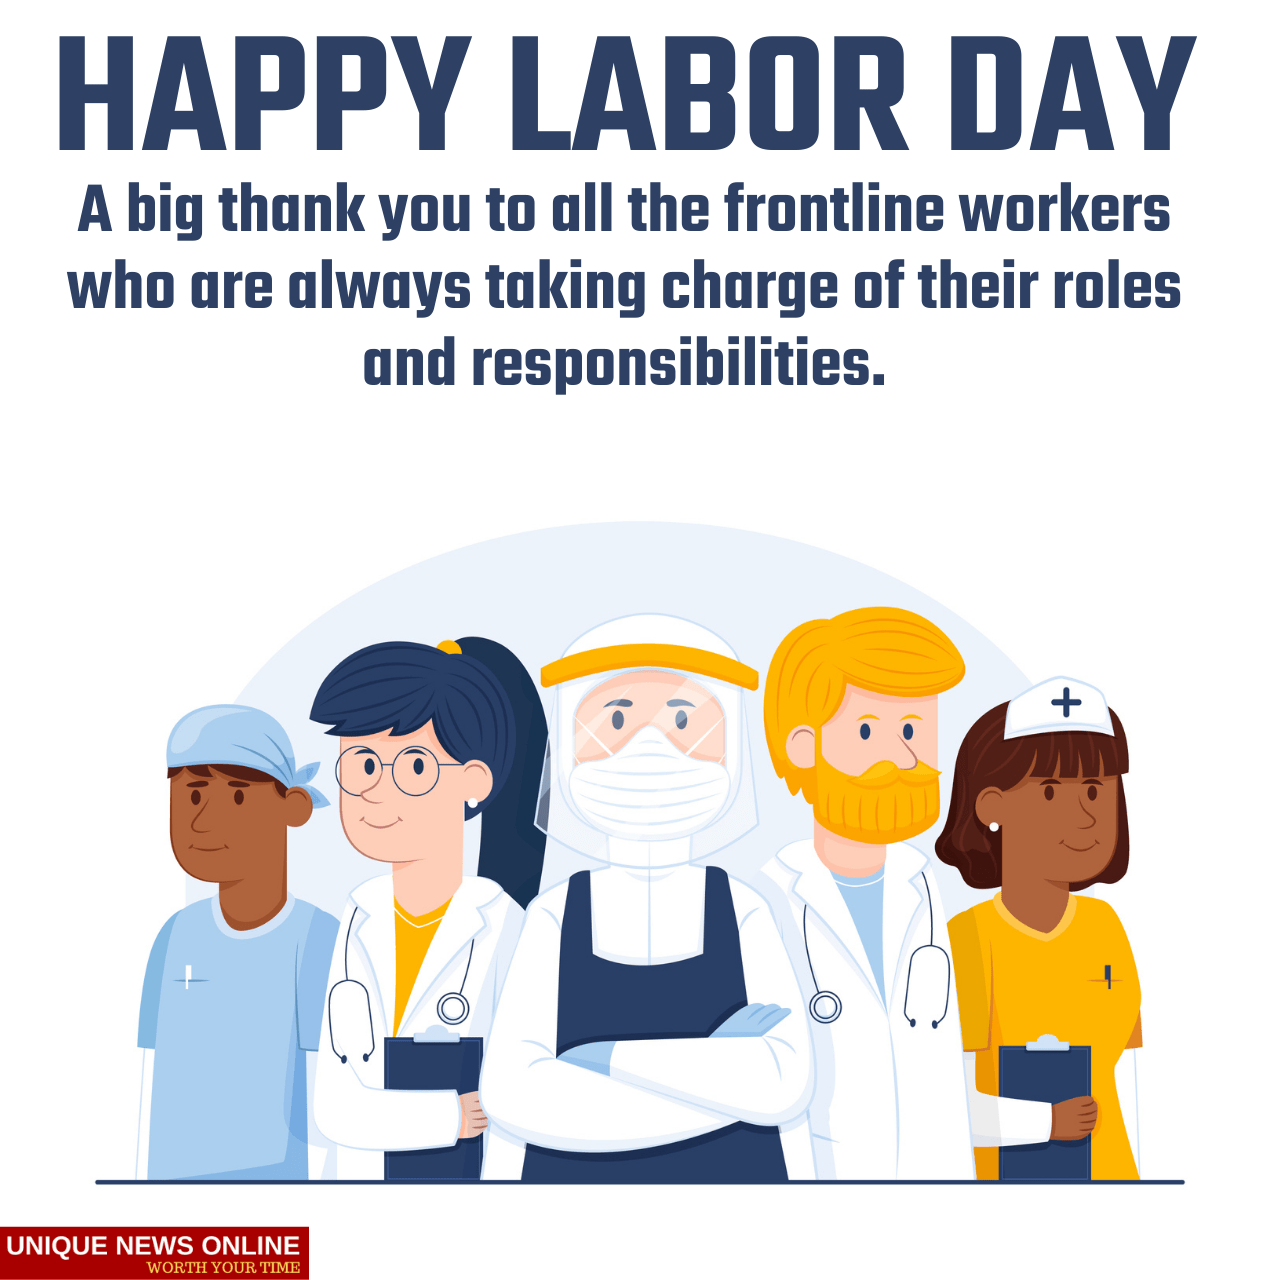 Happy Labor Day 2021 Quotes, Images, Wishes, Greetings, Instagram Captions, and Stickers for Frontliners